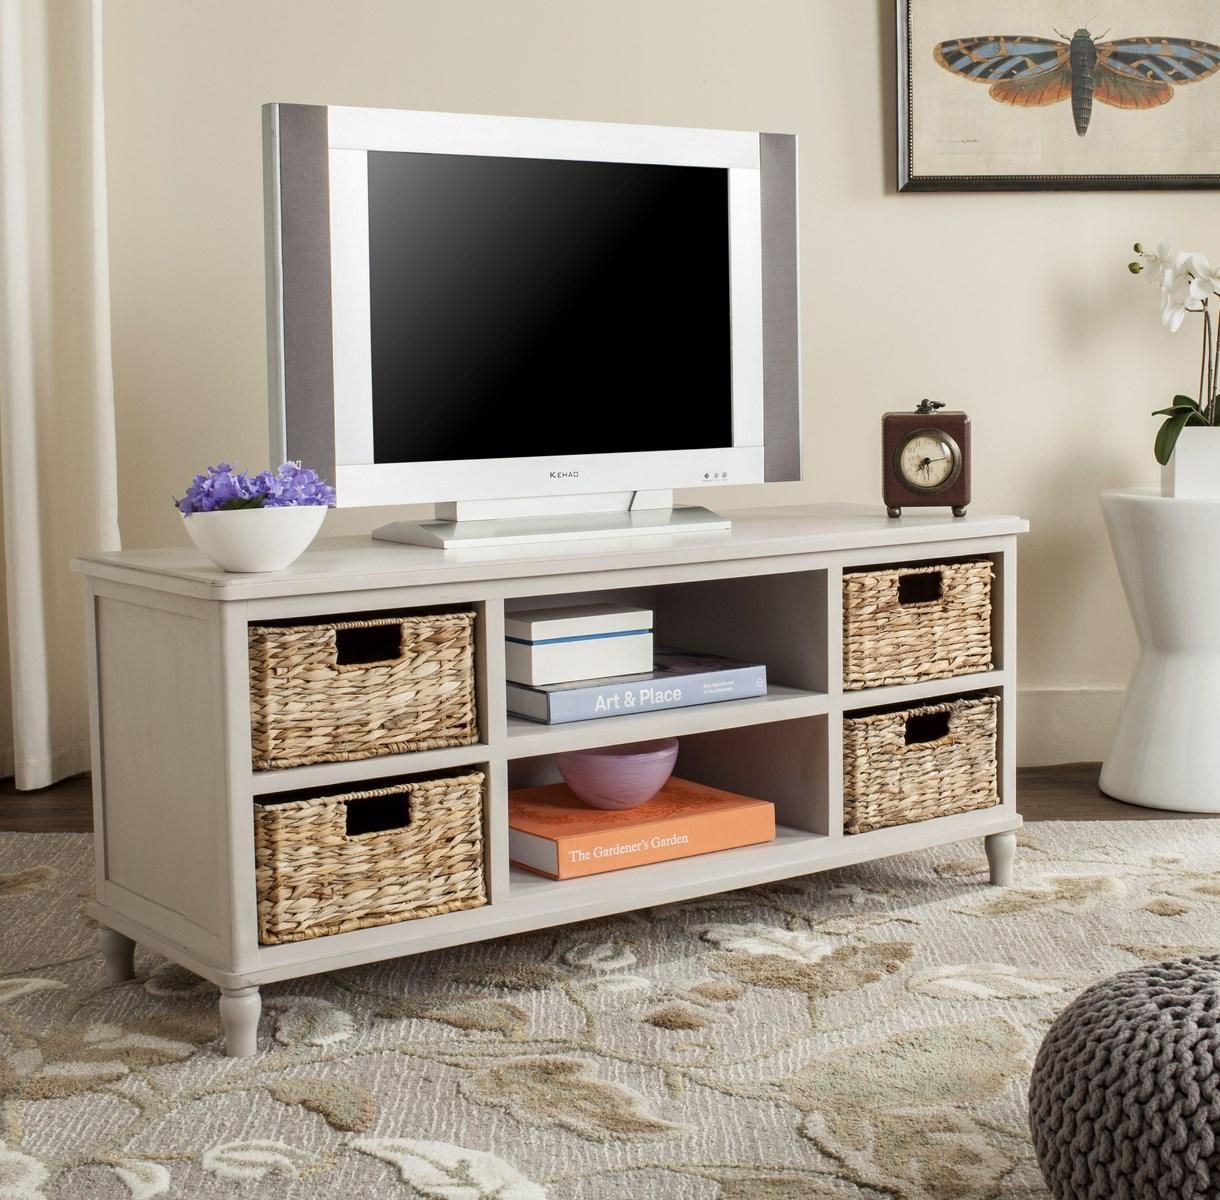 Amh5745D Tv Cabinet - Furniturein 2018 | Int Design Class pertaining to Natural Cane Media Console Tables (Image 4 of 30)